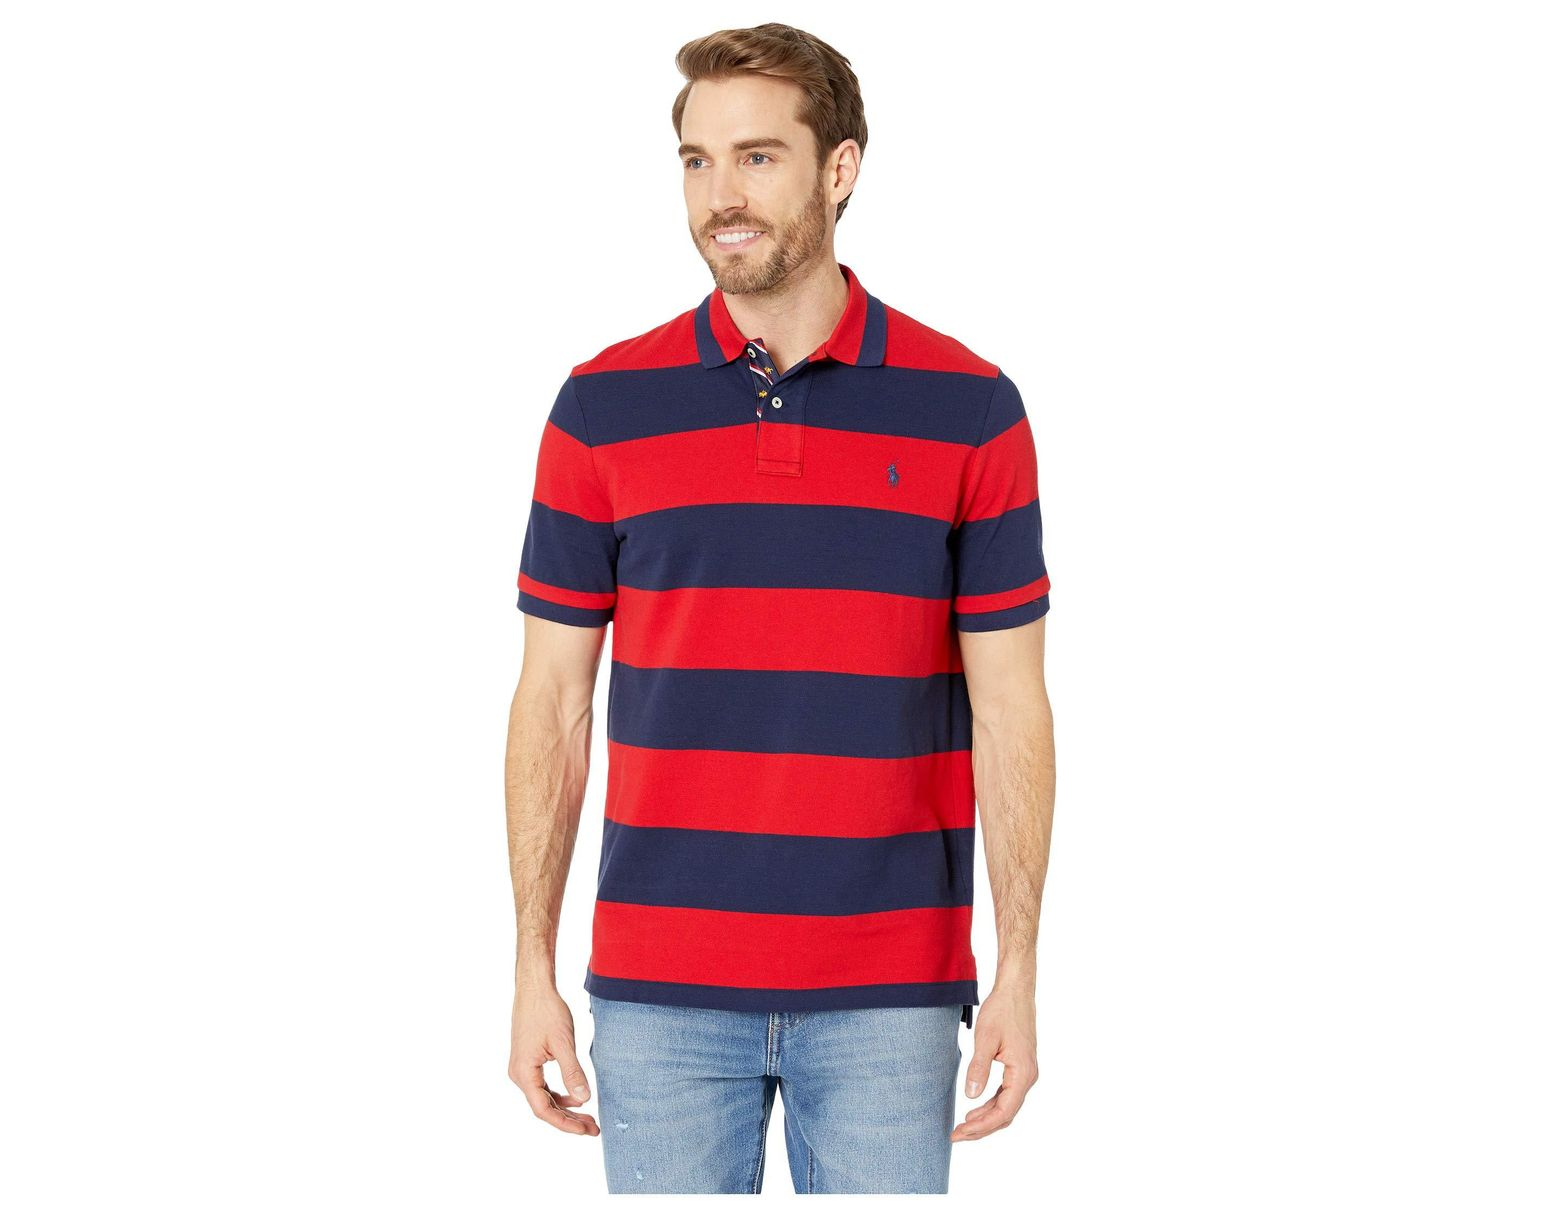 9aa7e2d5 Polo Ralph Lauren Yarn-dyed Mesh Short Sleeve Knit (collin Blue/holiday  Navy) Men's Clothing in Red for Men - Lyst